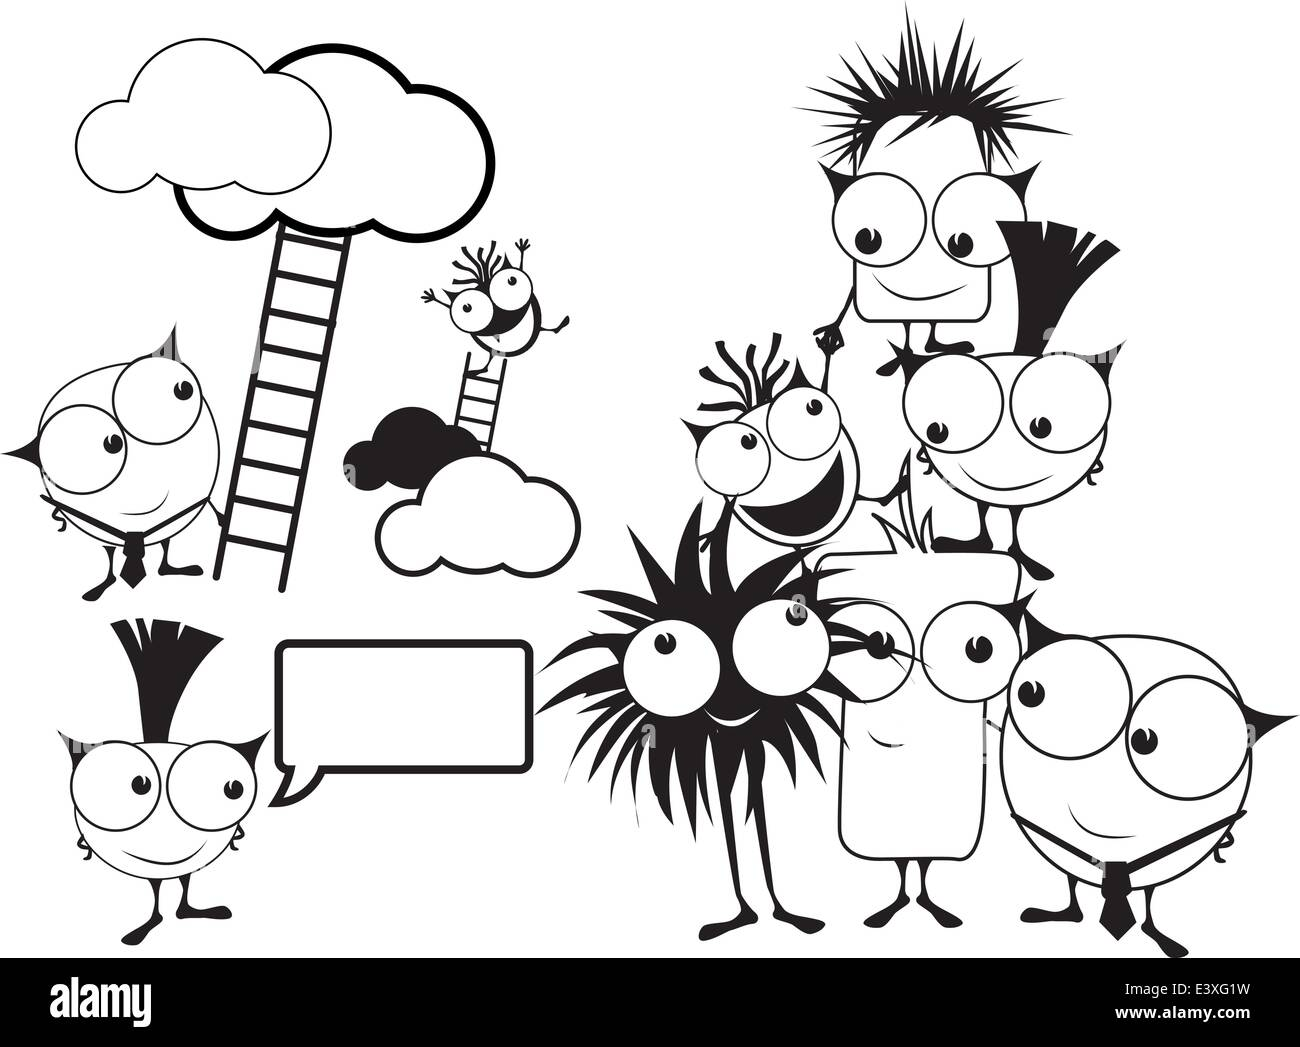 cartoon monster characters with a with a teamwork and challenge